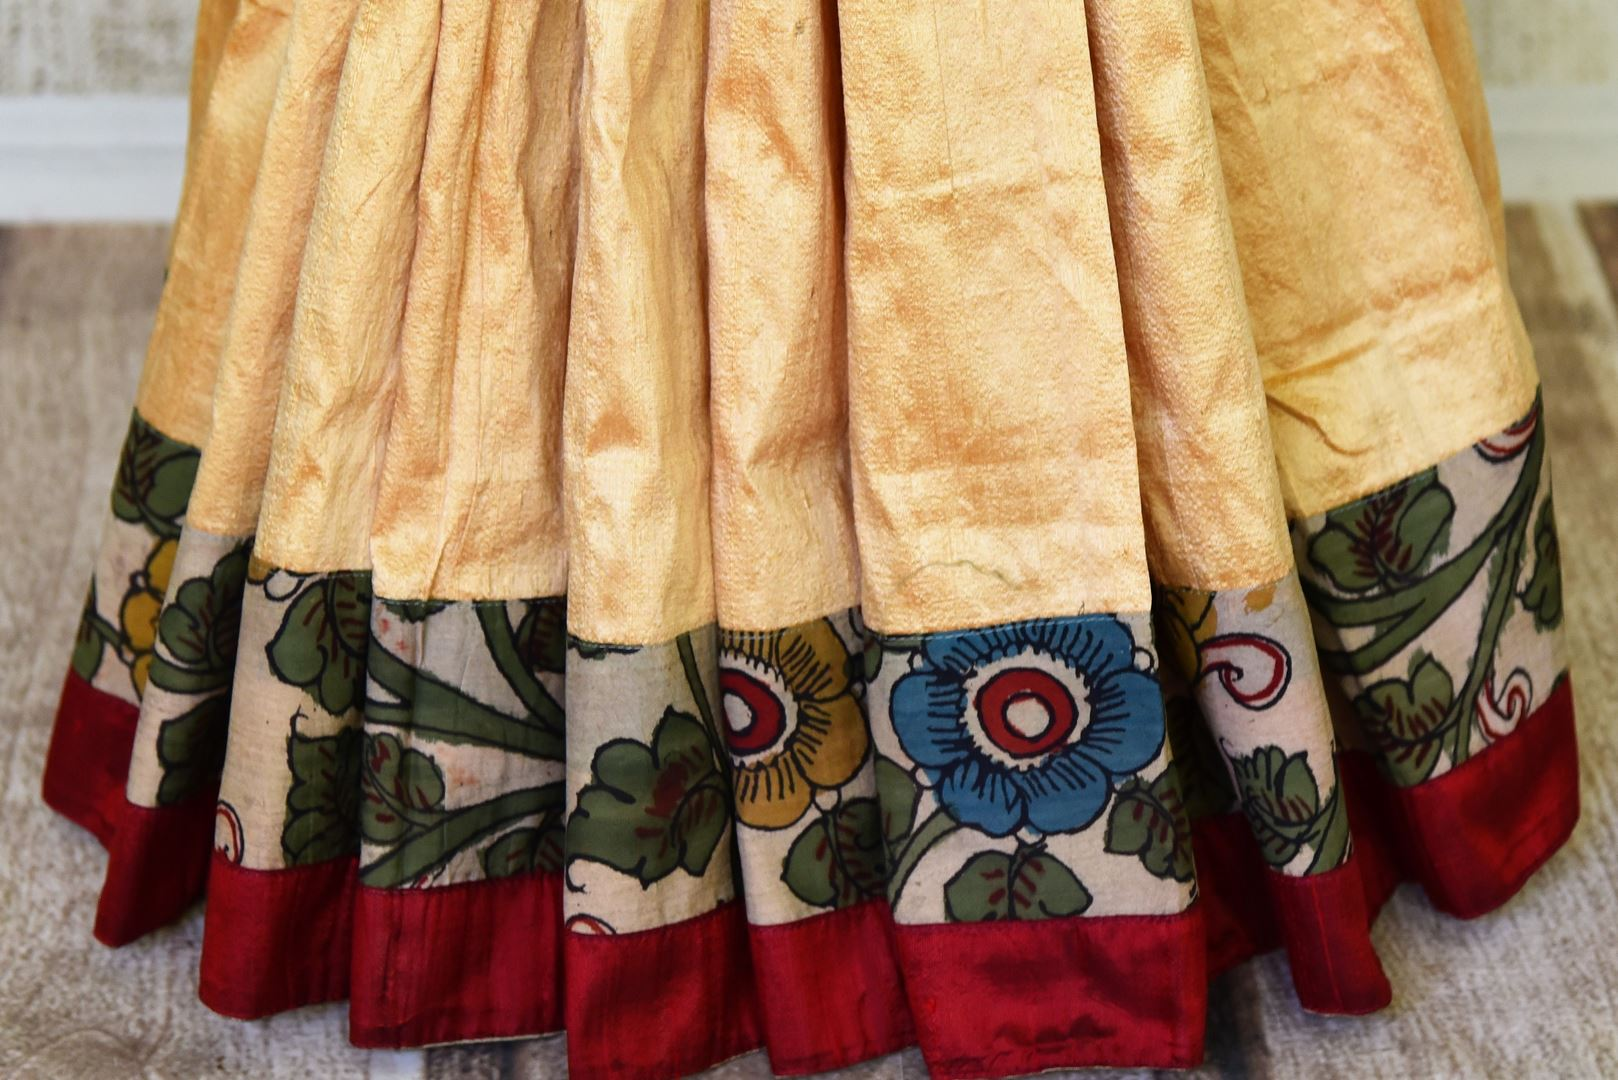 Buy graceful cream raw silk sari online in USA with hand painted Kalamkari border and black sari blouse. Elevate your traditional glam on weddings and special occasions with an exclusive range of handwoven sarees, designer saris especially for Indian women in USA at Pure Elegance Indian fashion store. Shop now.-pleats